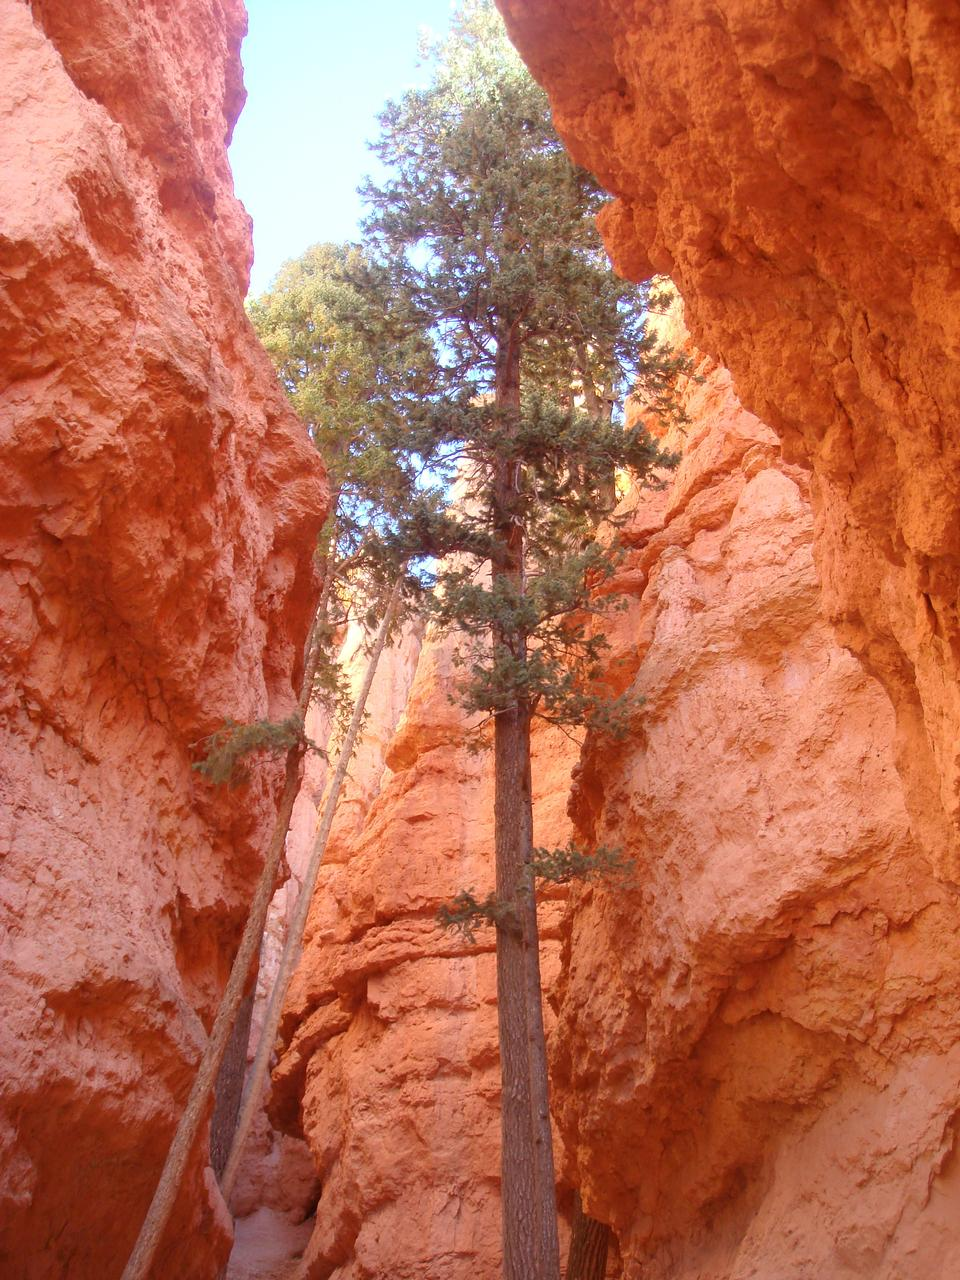 Pine Trees at Bryce Canyon National Park, Utah